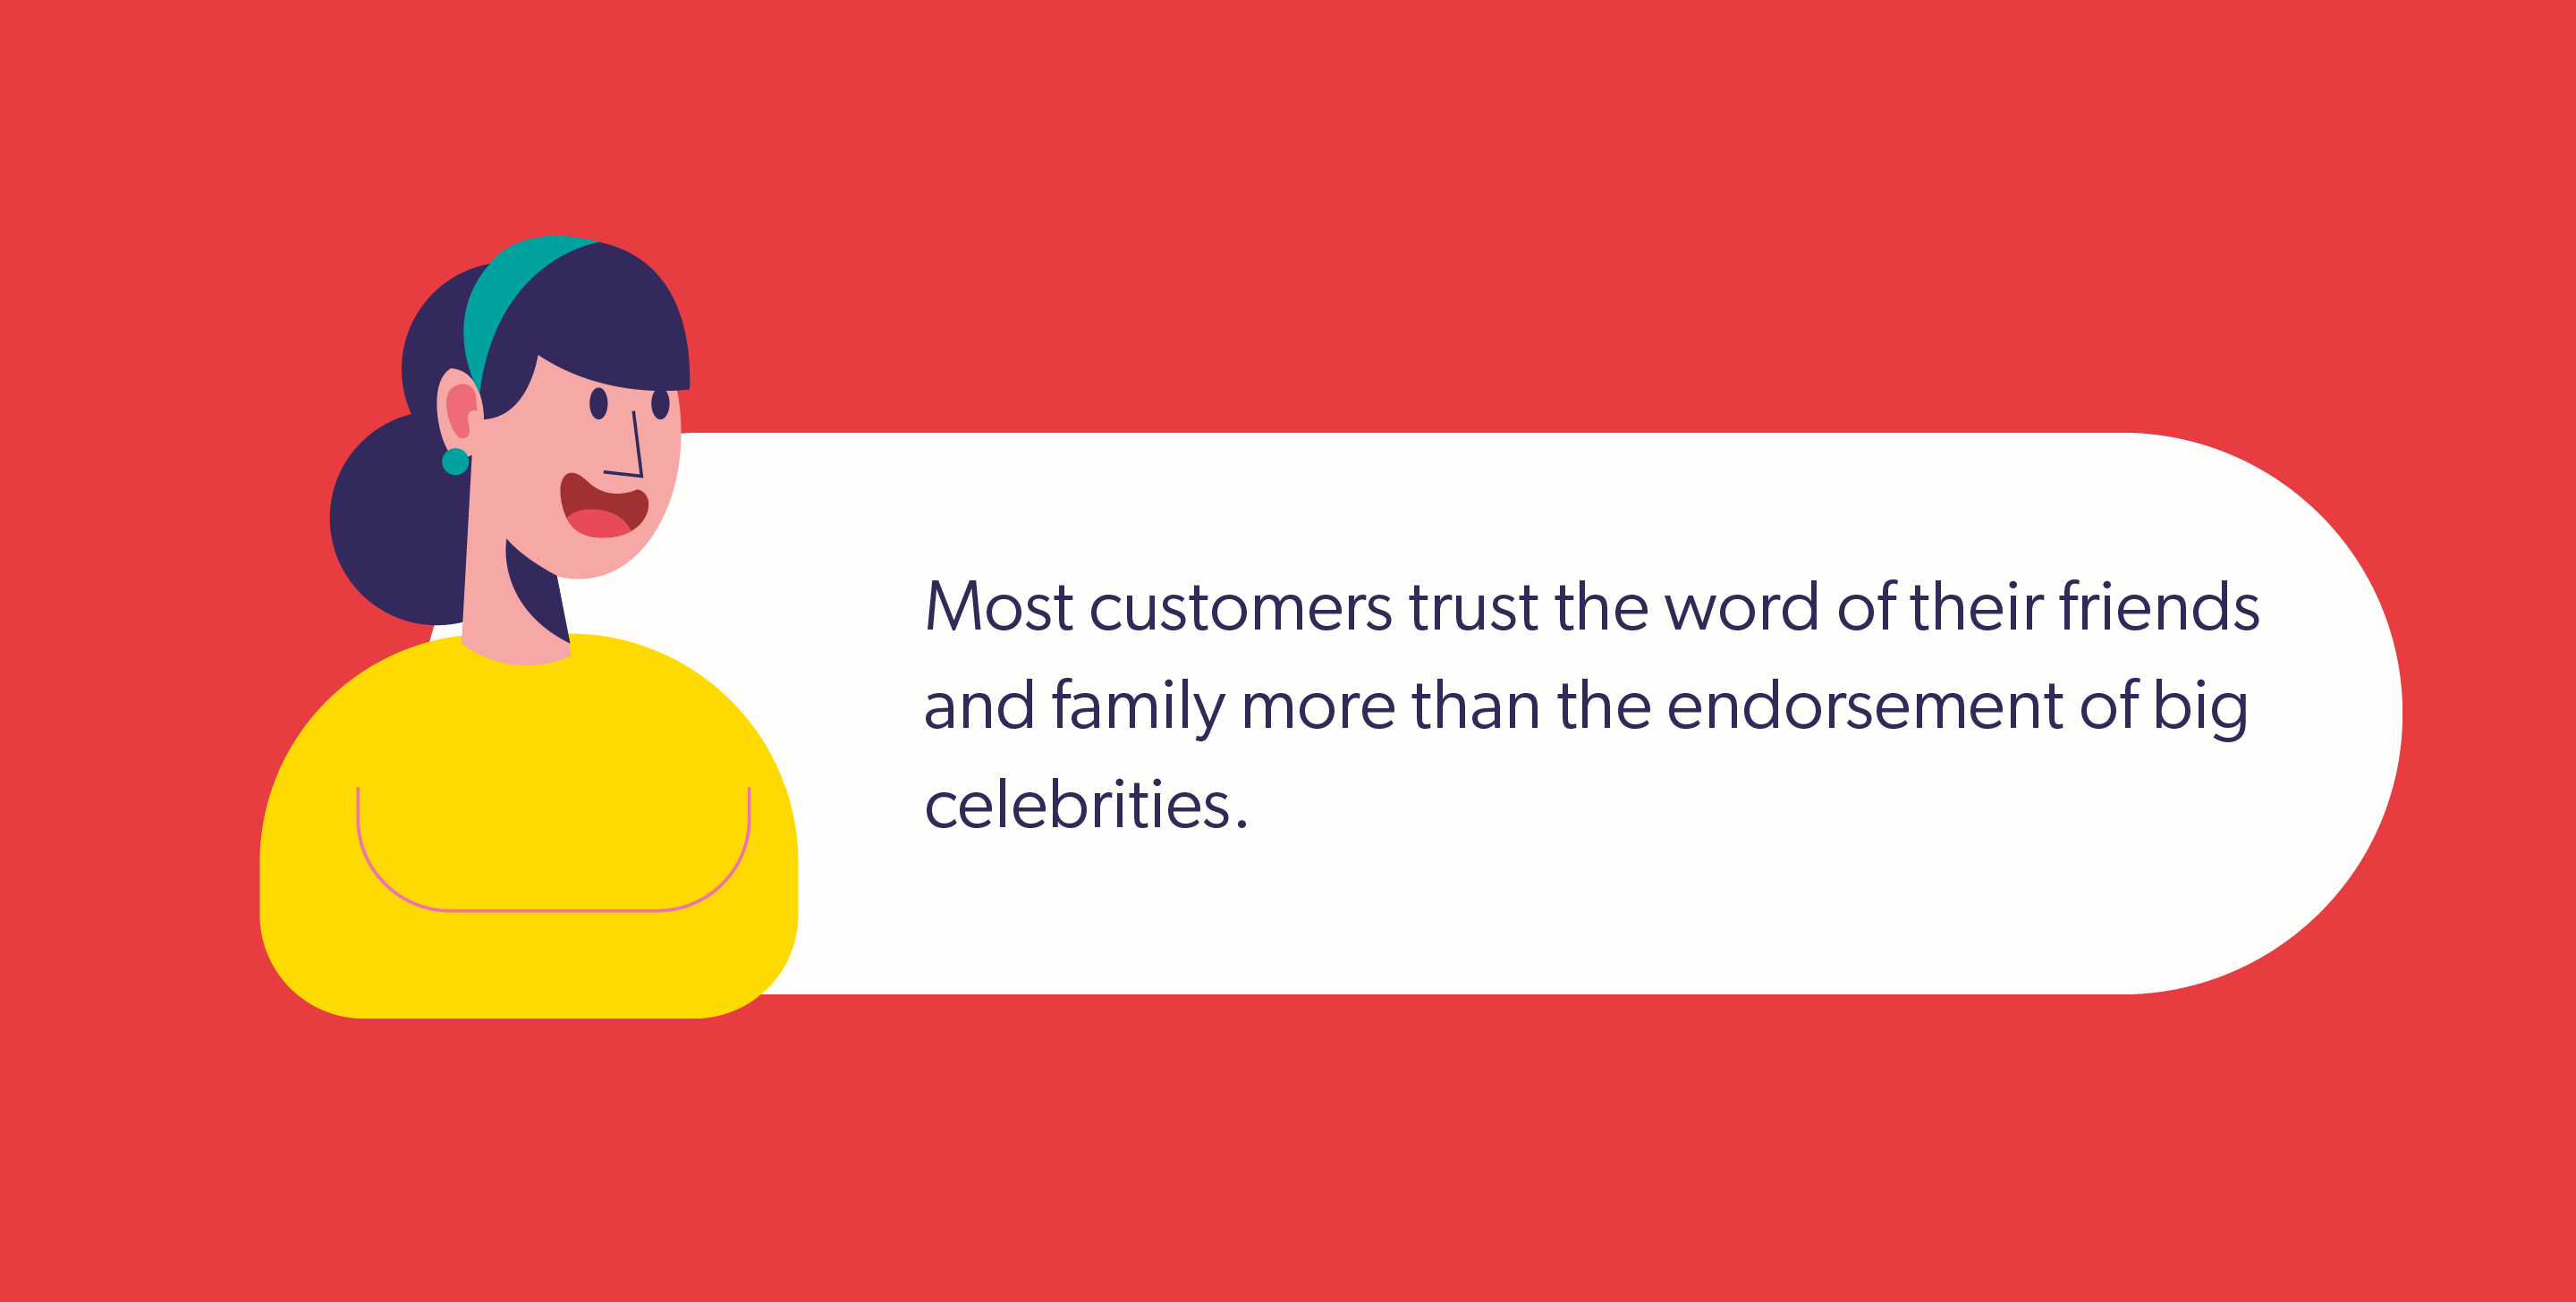 Most customers trust the word of their friends and family more than the endorsement of big celebrities.